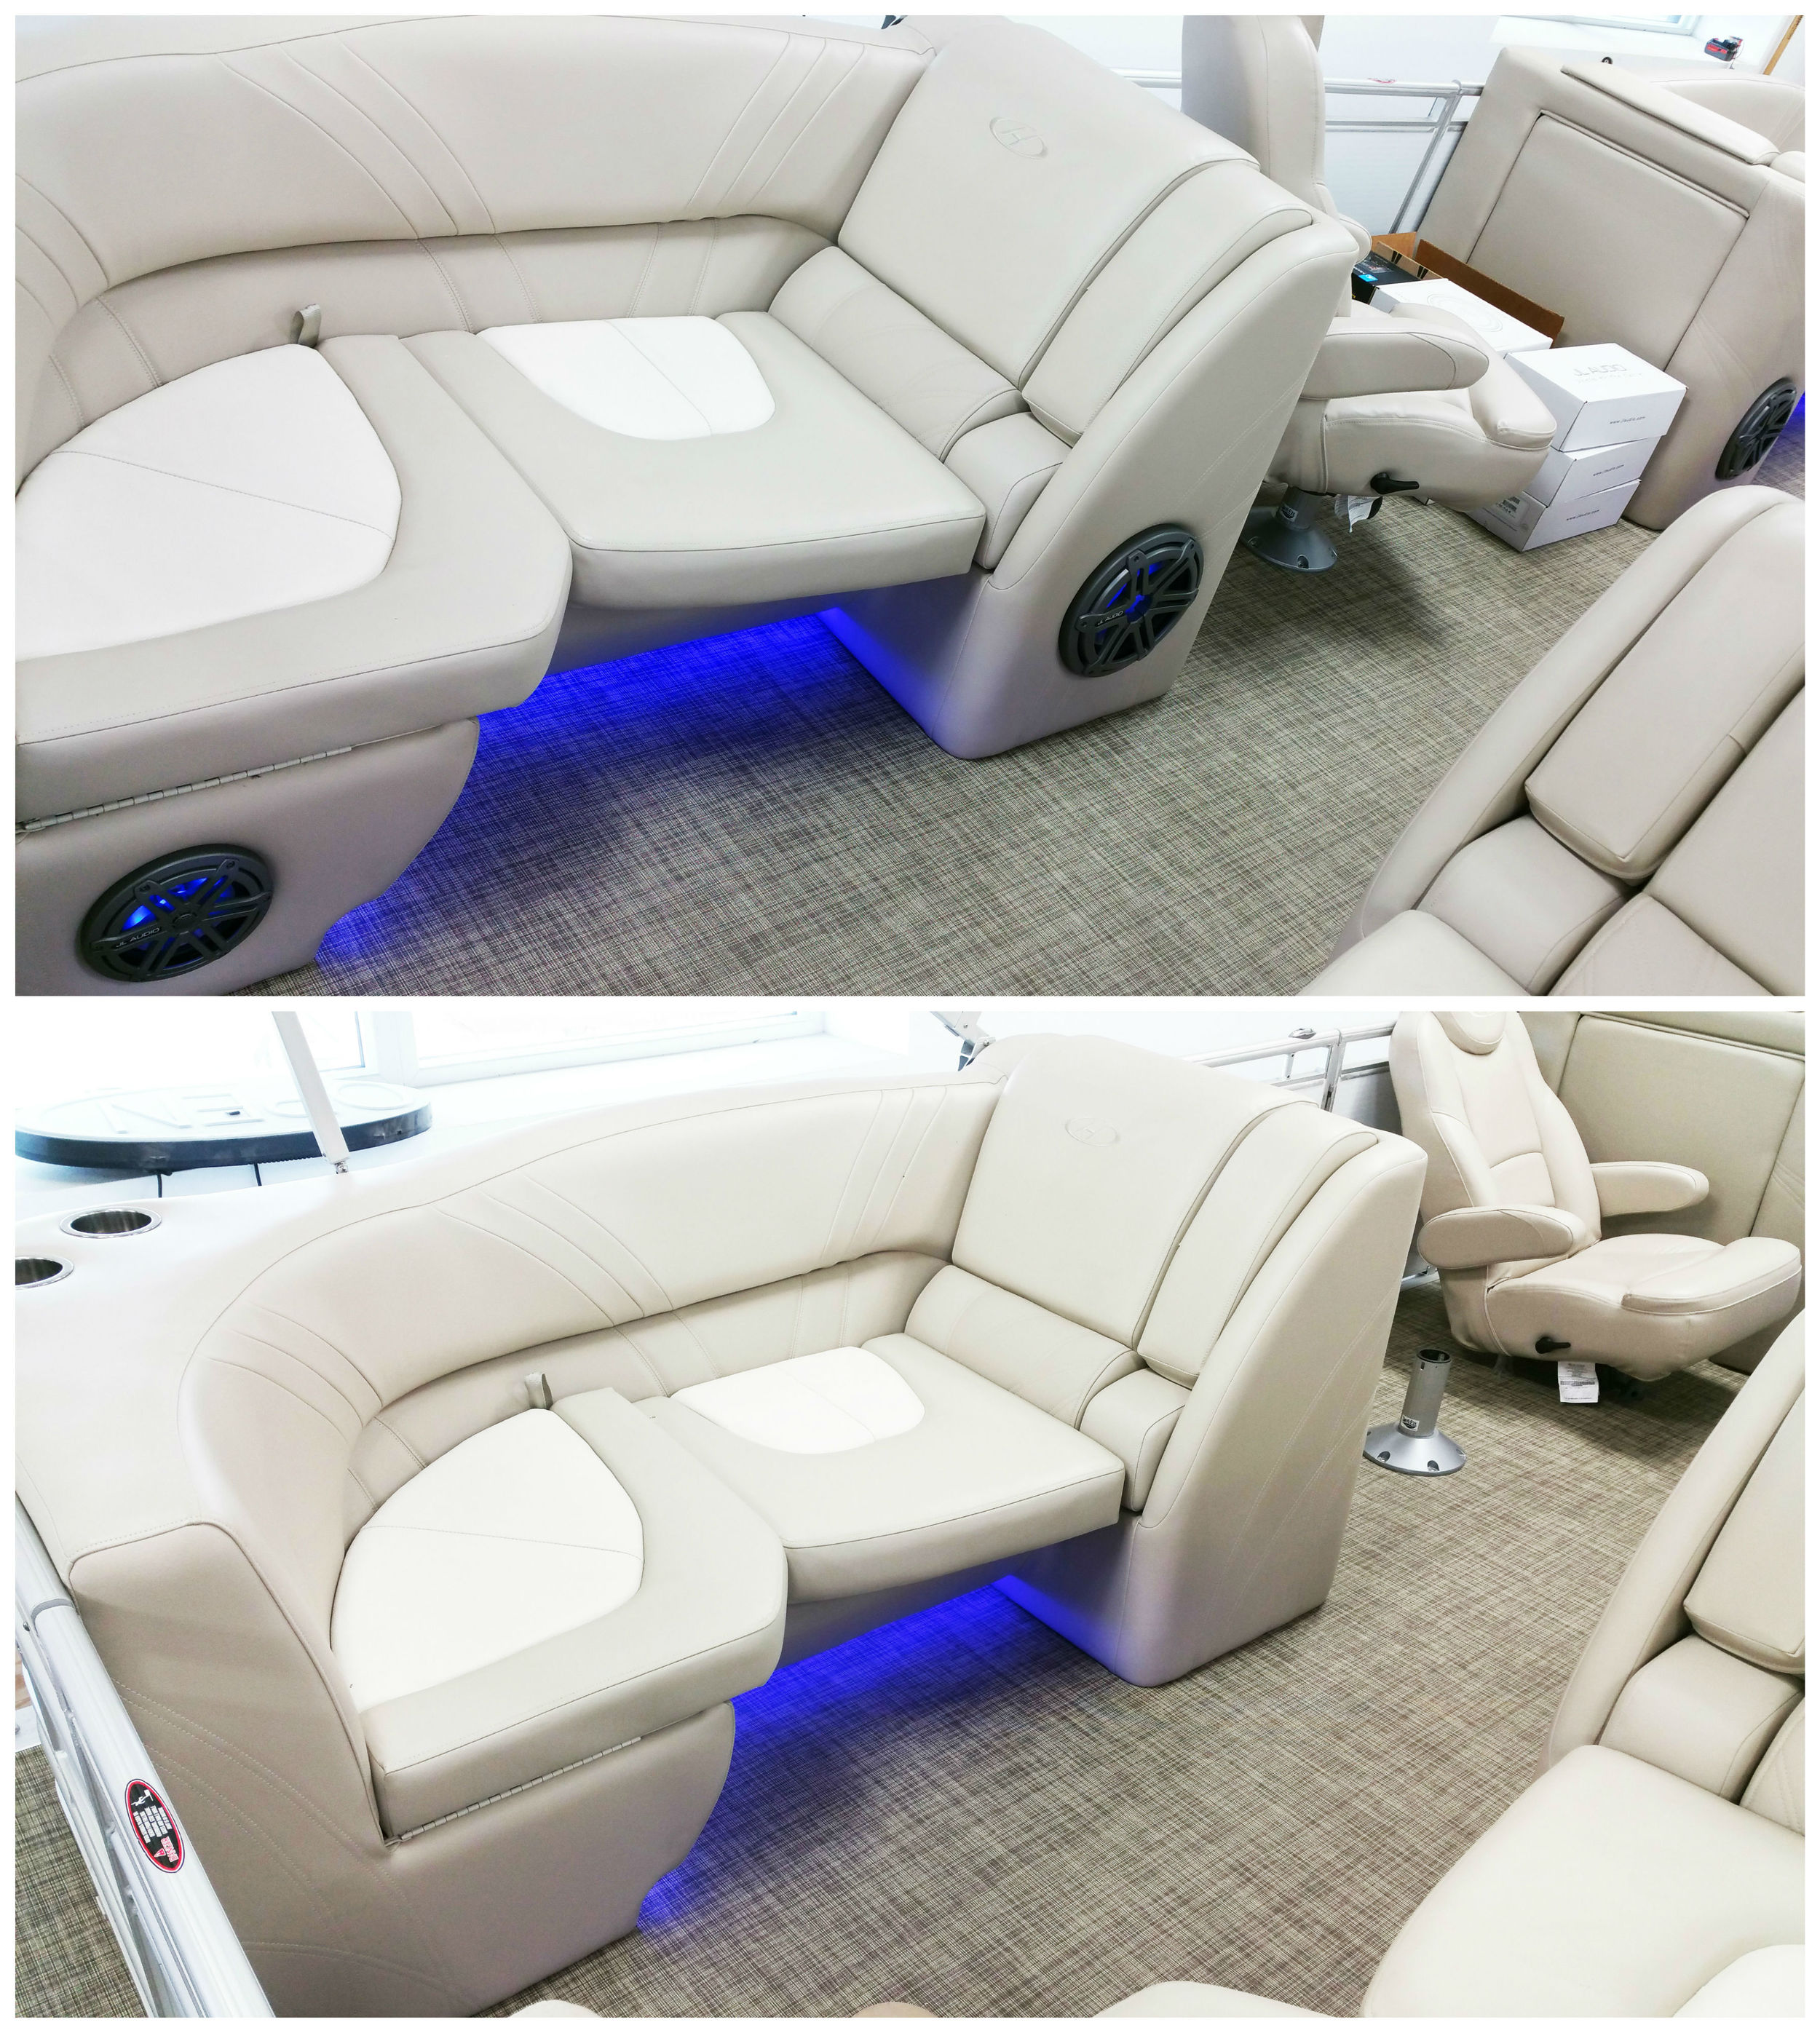 Rear Zone: Added a pair the MX650 Speakers with LED Lighting from JL Audio & another MXIB3 Subwoofer.